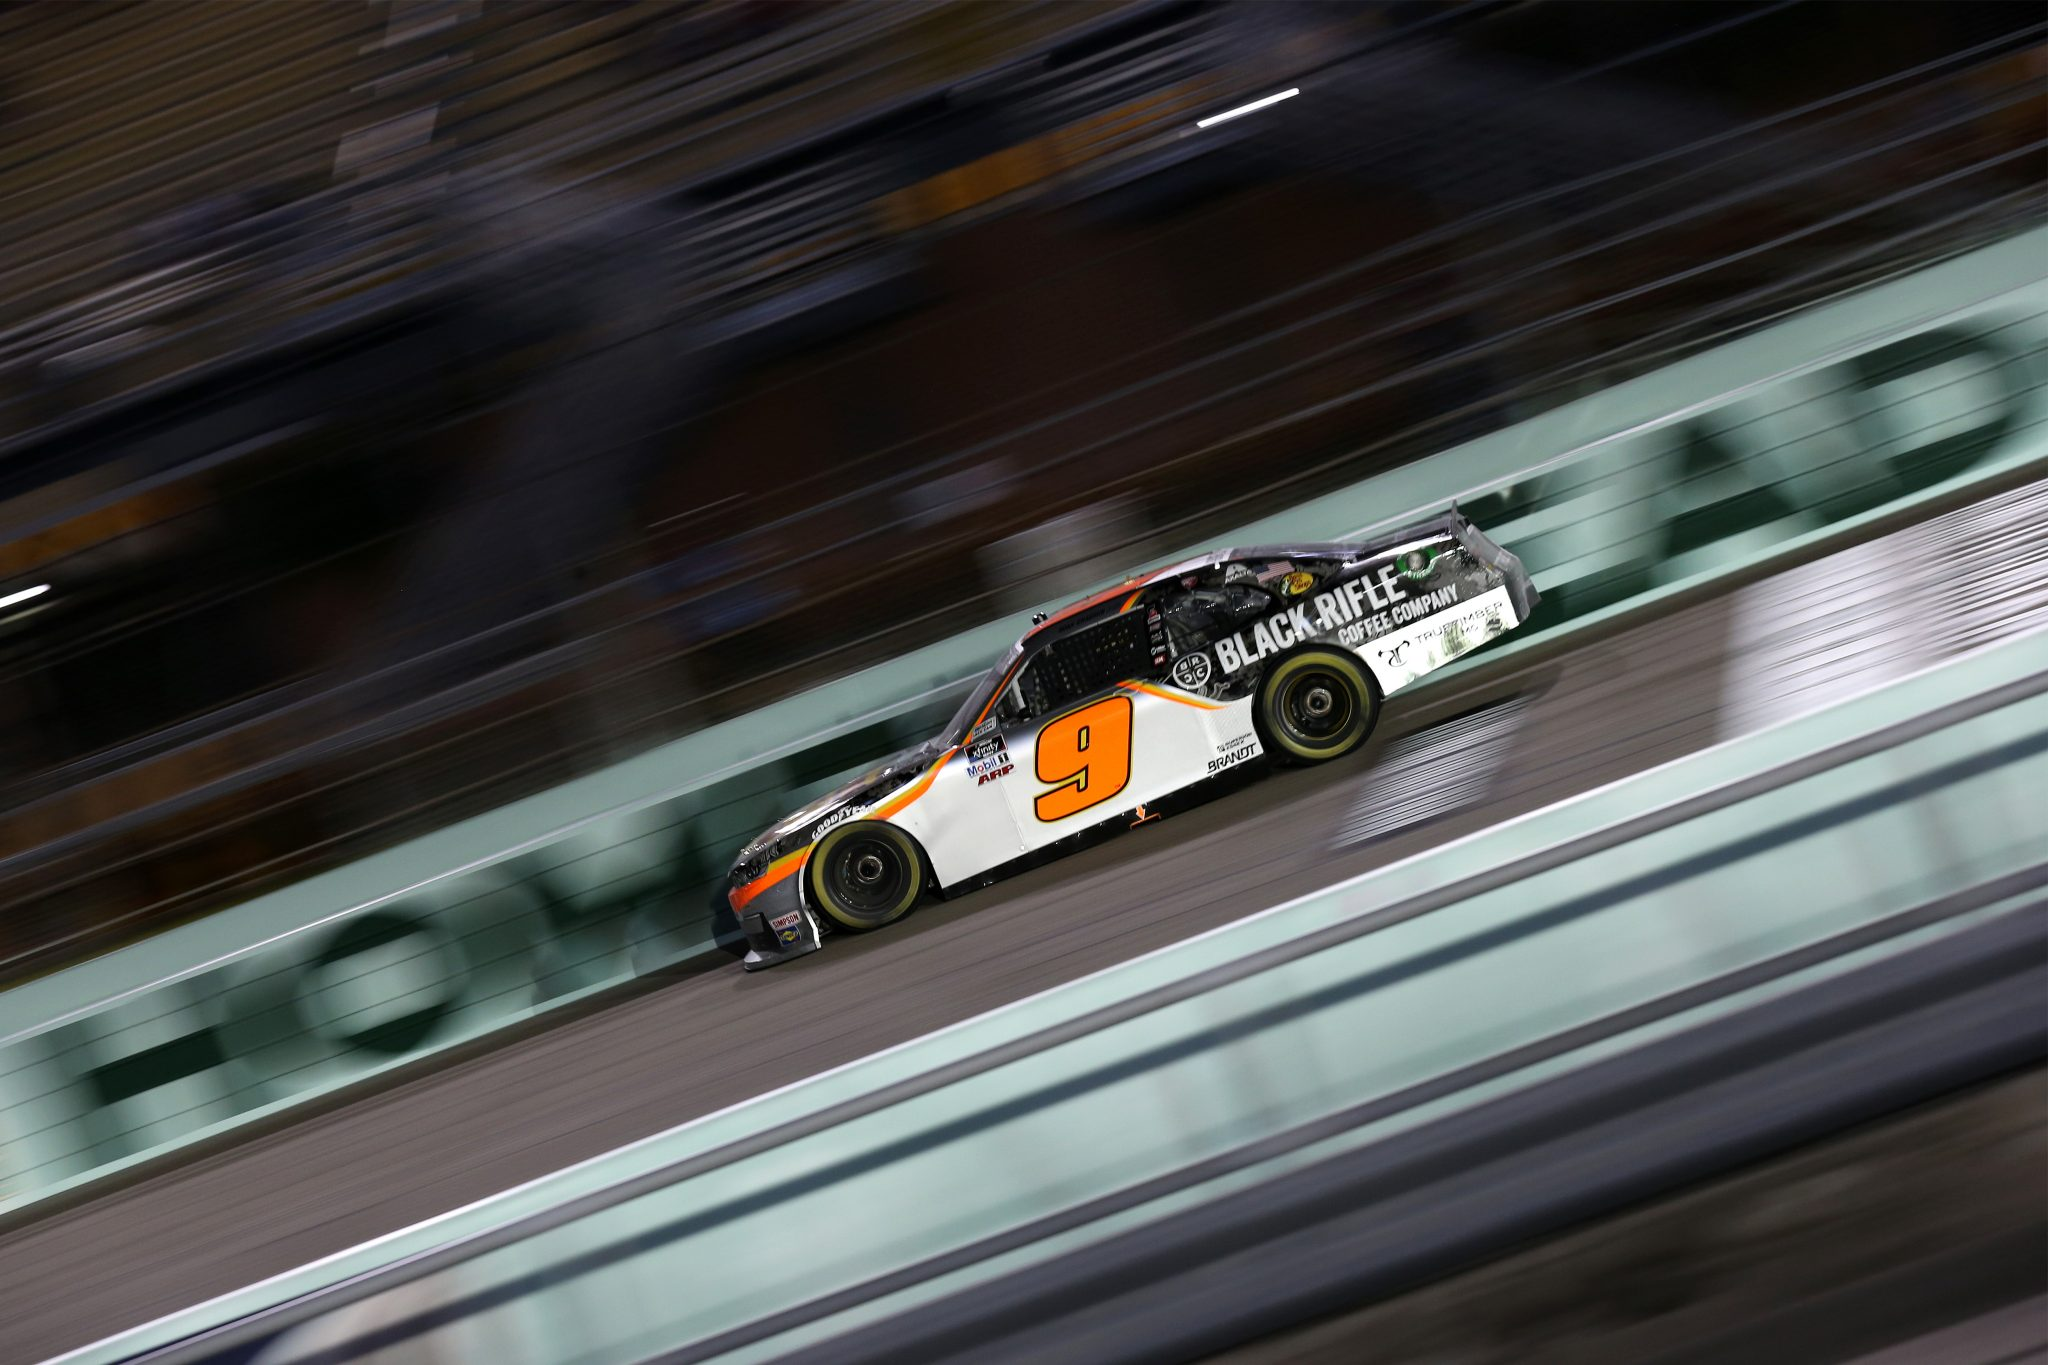 HOMESTEAD, FLORIDA - FEBRUARY 27: Noah Gragson, driver of the #9 Bass Pro Shops/True Timber/BRCC Chevrolet, drives during the NASCAR Xfinity Series Contender Boats 250 at Homestead-Miami Speedway on February 27, 2021 in Homestead, Florida. (Photo by Sean Gardner/Getty Images) | Getty Images